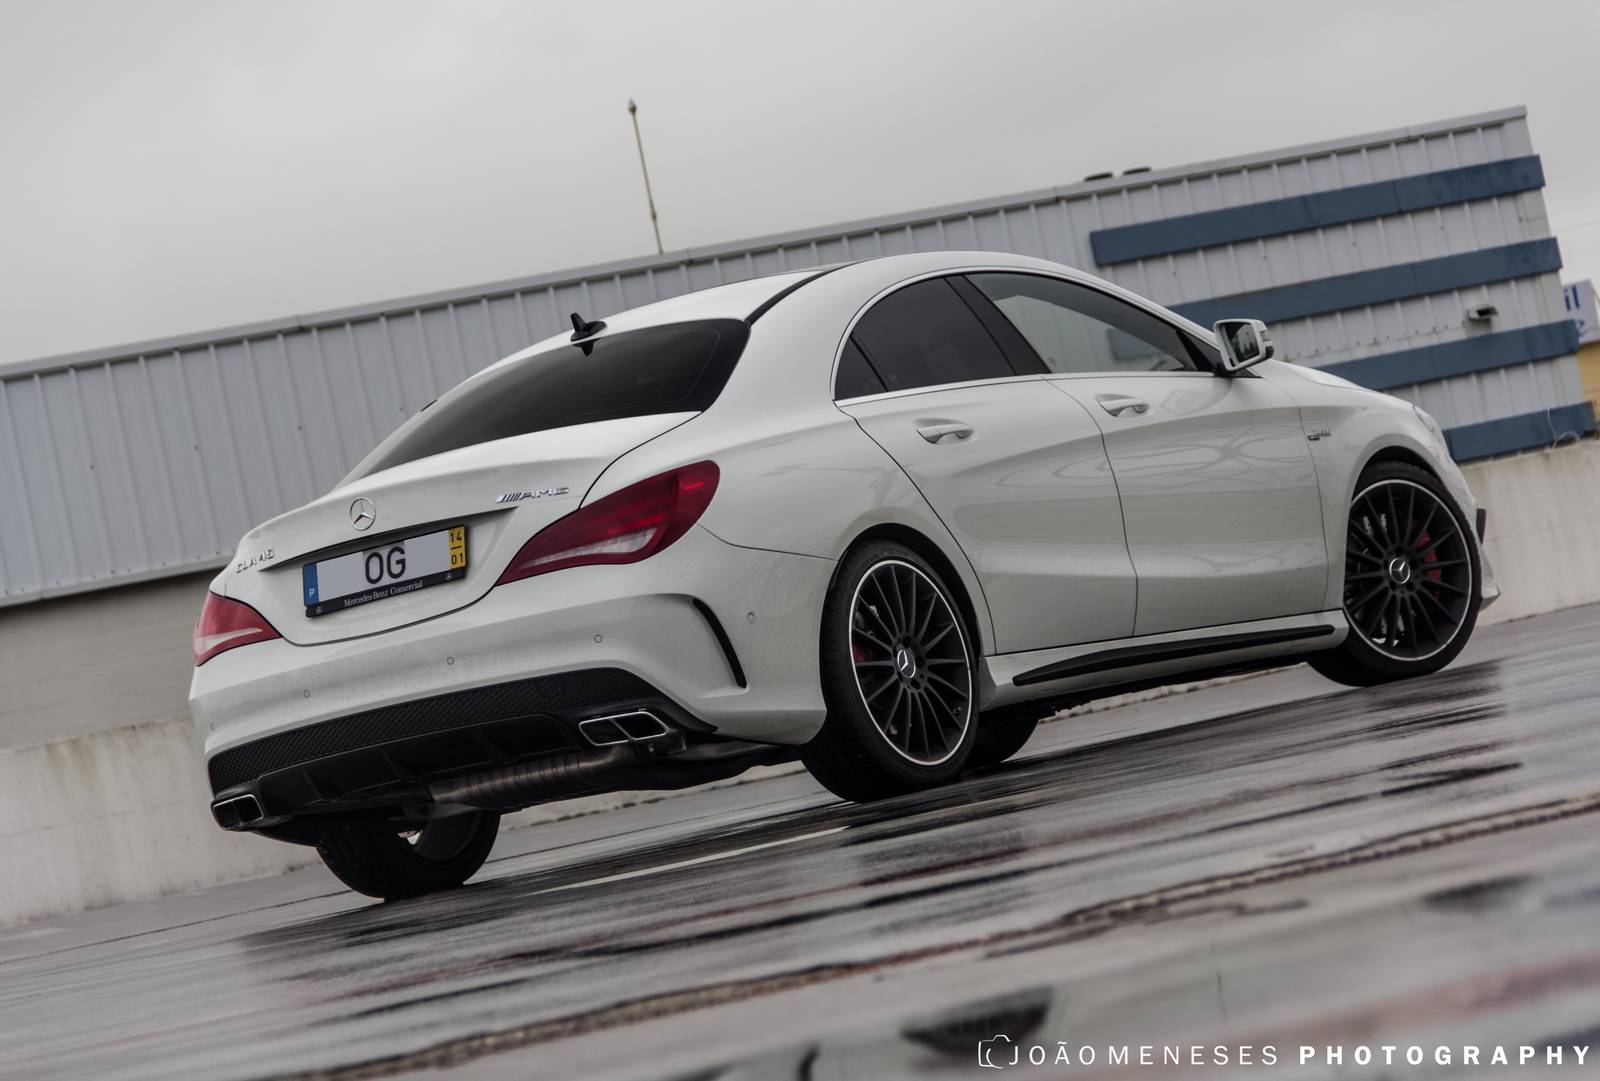 2014 mercedes benz cla 45 amg photoshoot gtspirit. Black Bedroom Furniture Sets. Home Design Ideas